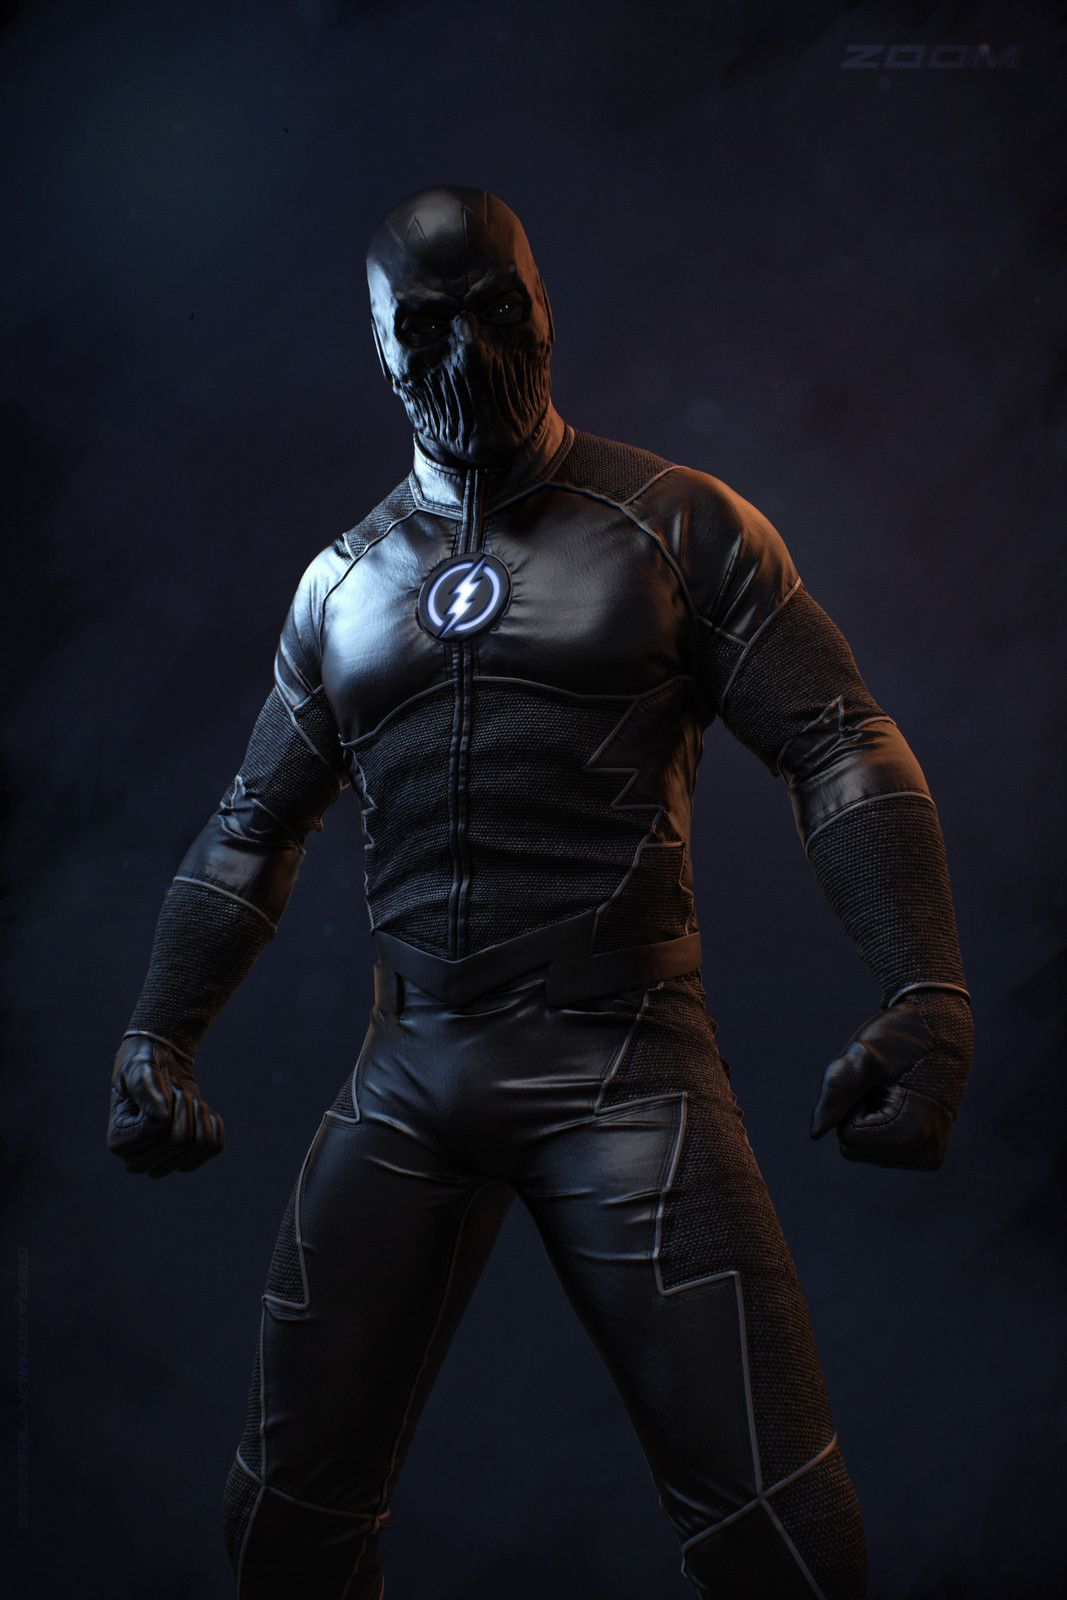 Zoom character inspired by the Flash TV Series, Gerard